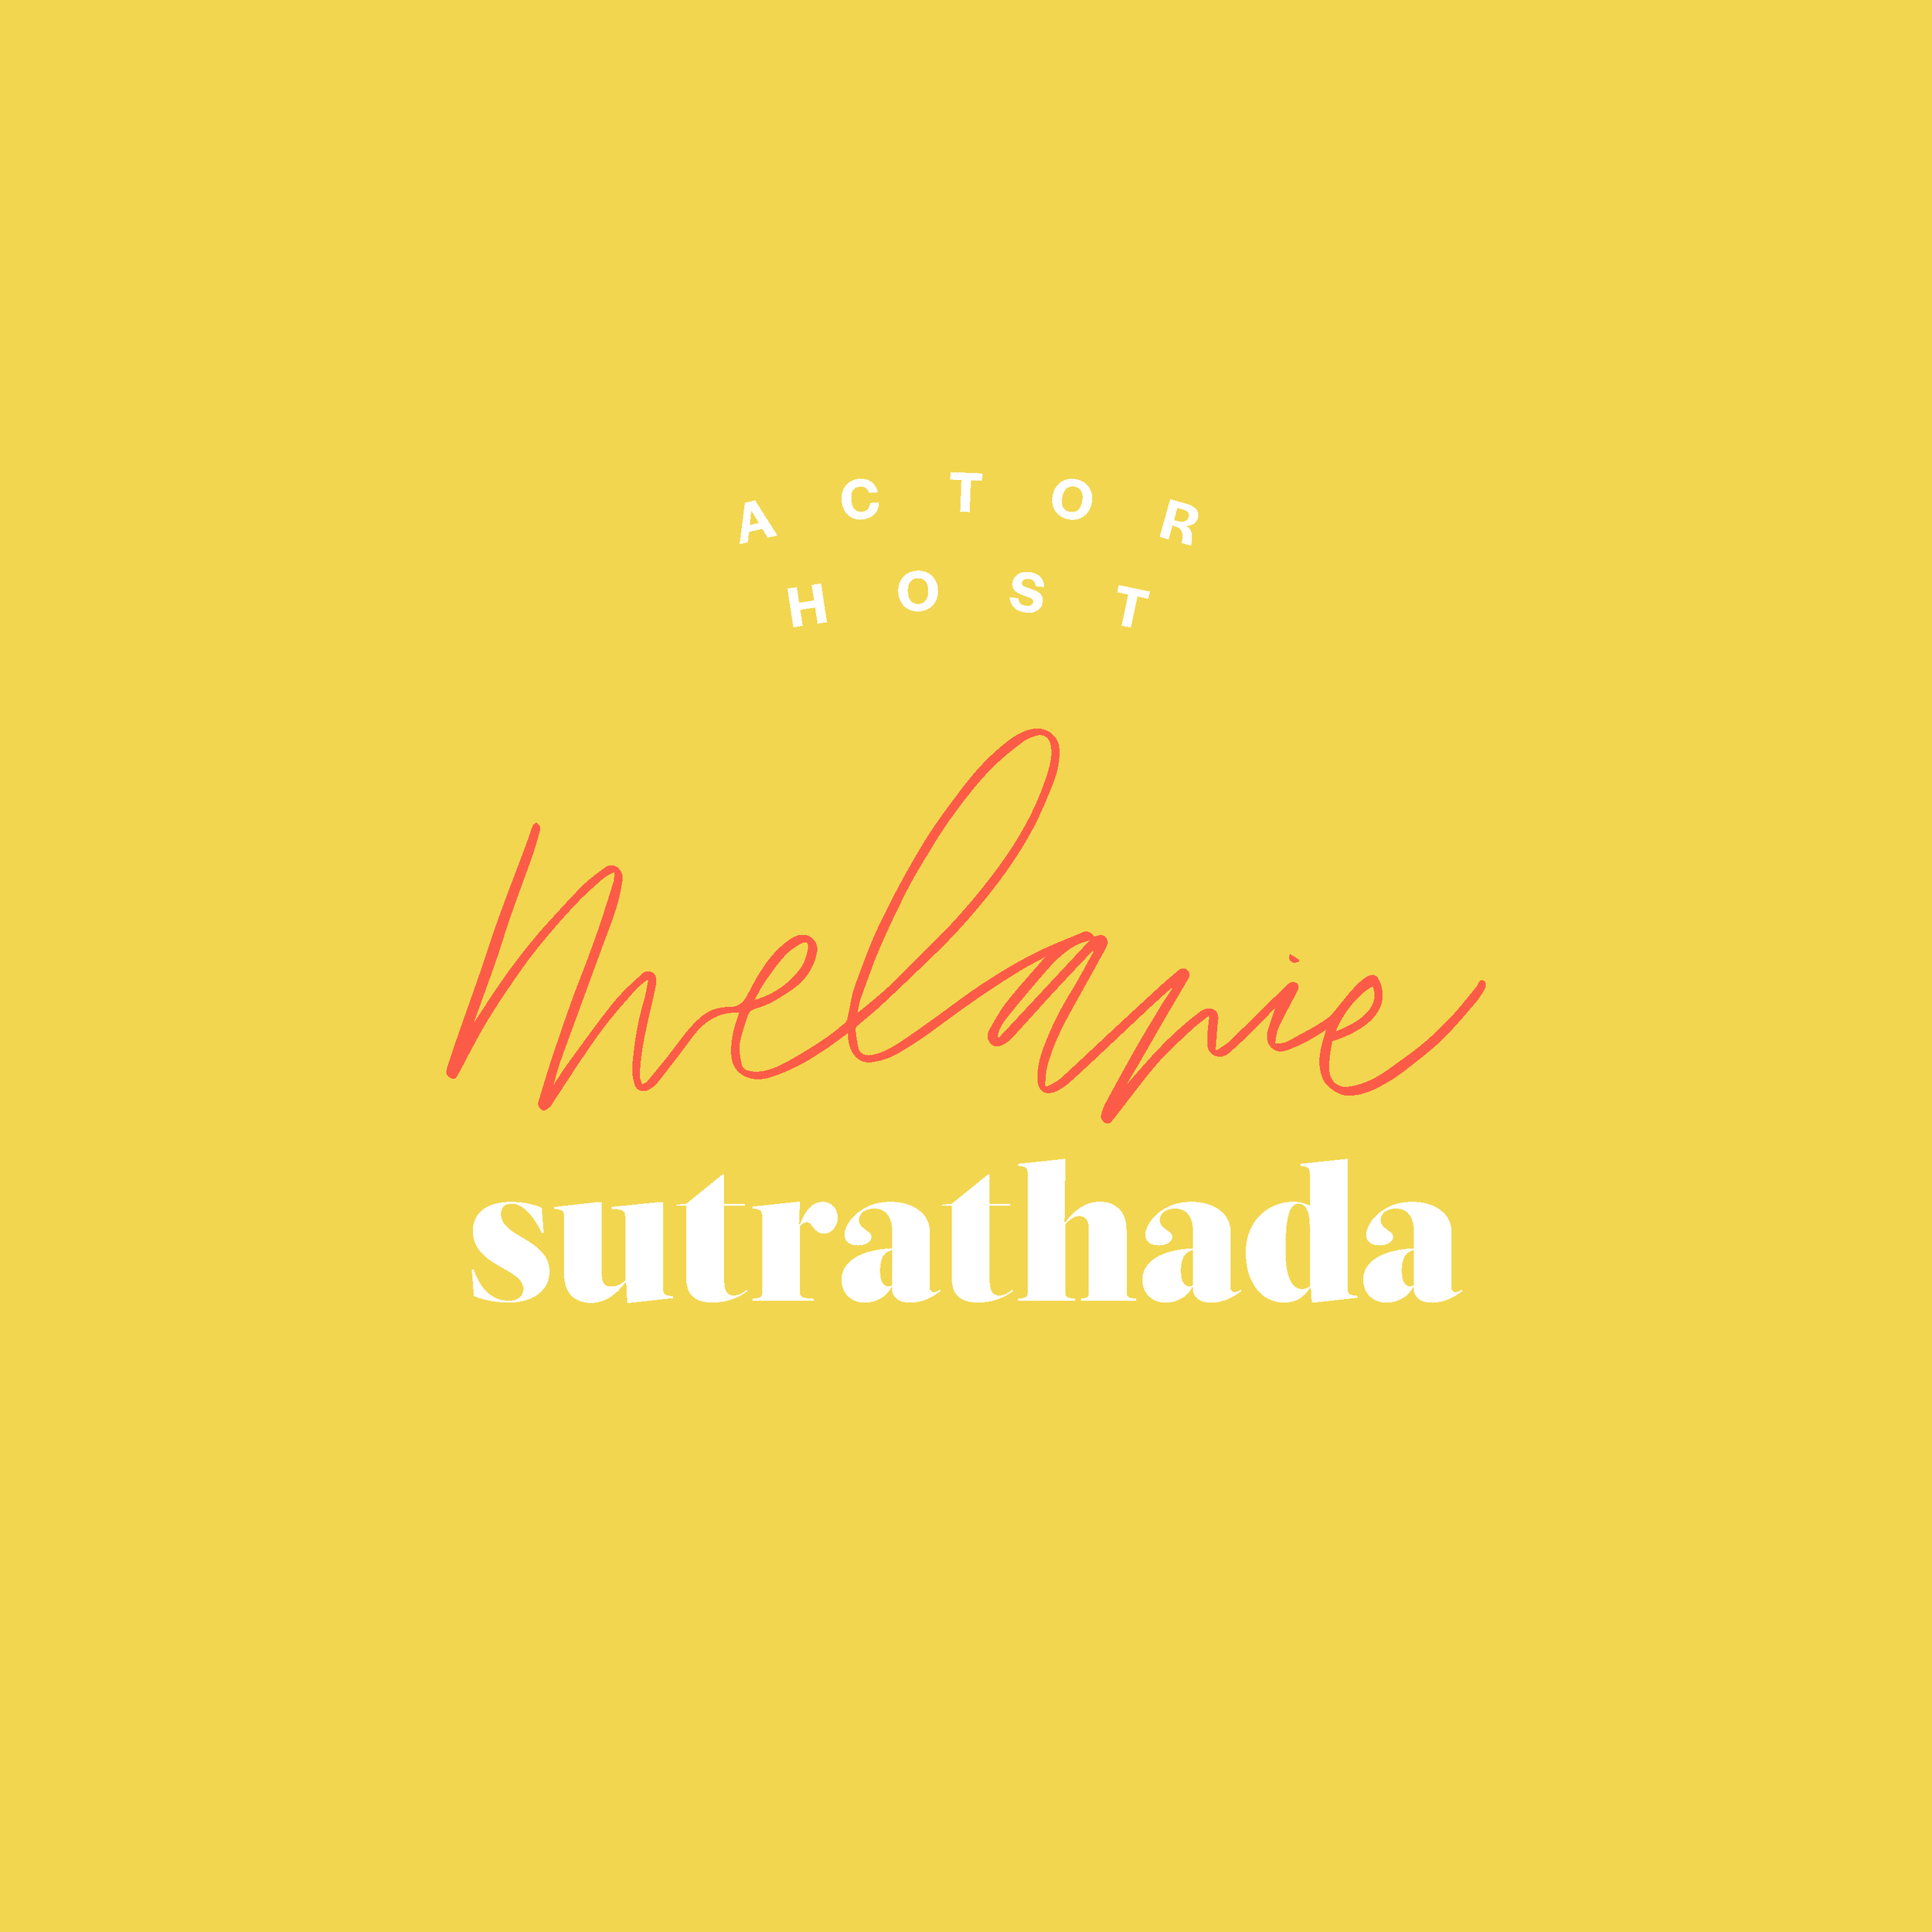 melanie-sutrathada-branding-colorful-happy-confetti-party-logo-bold-feminine2.png